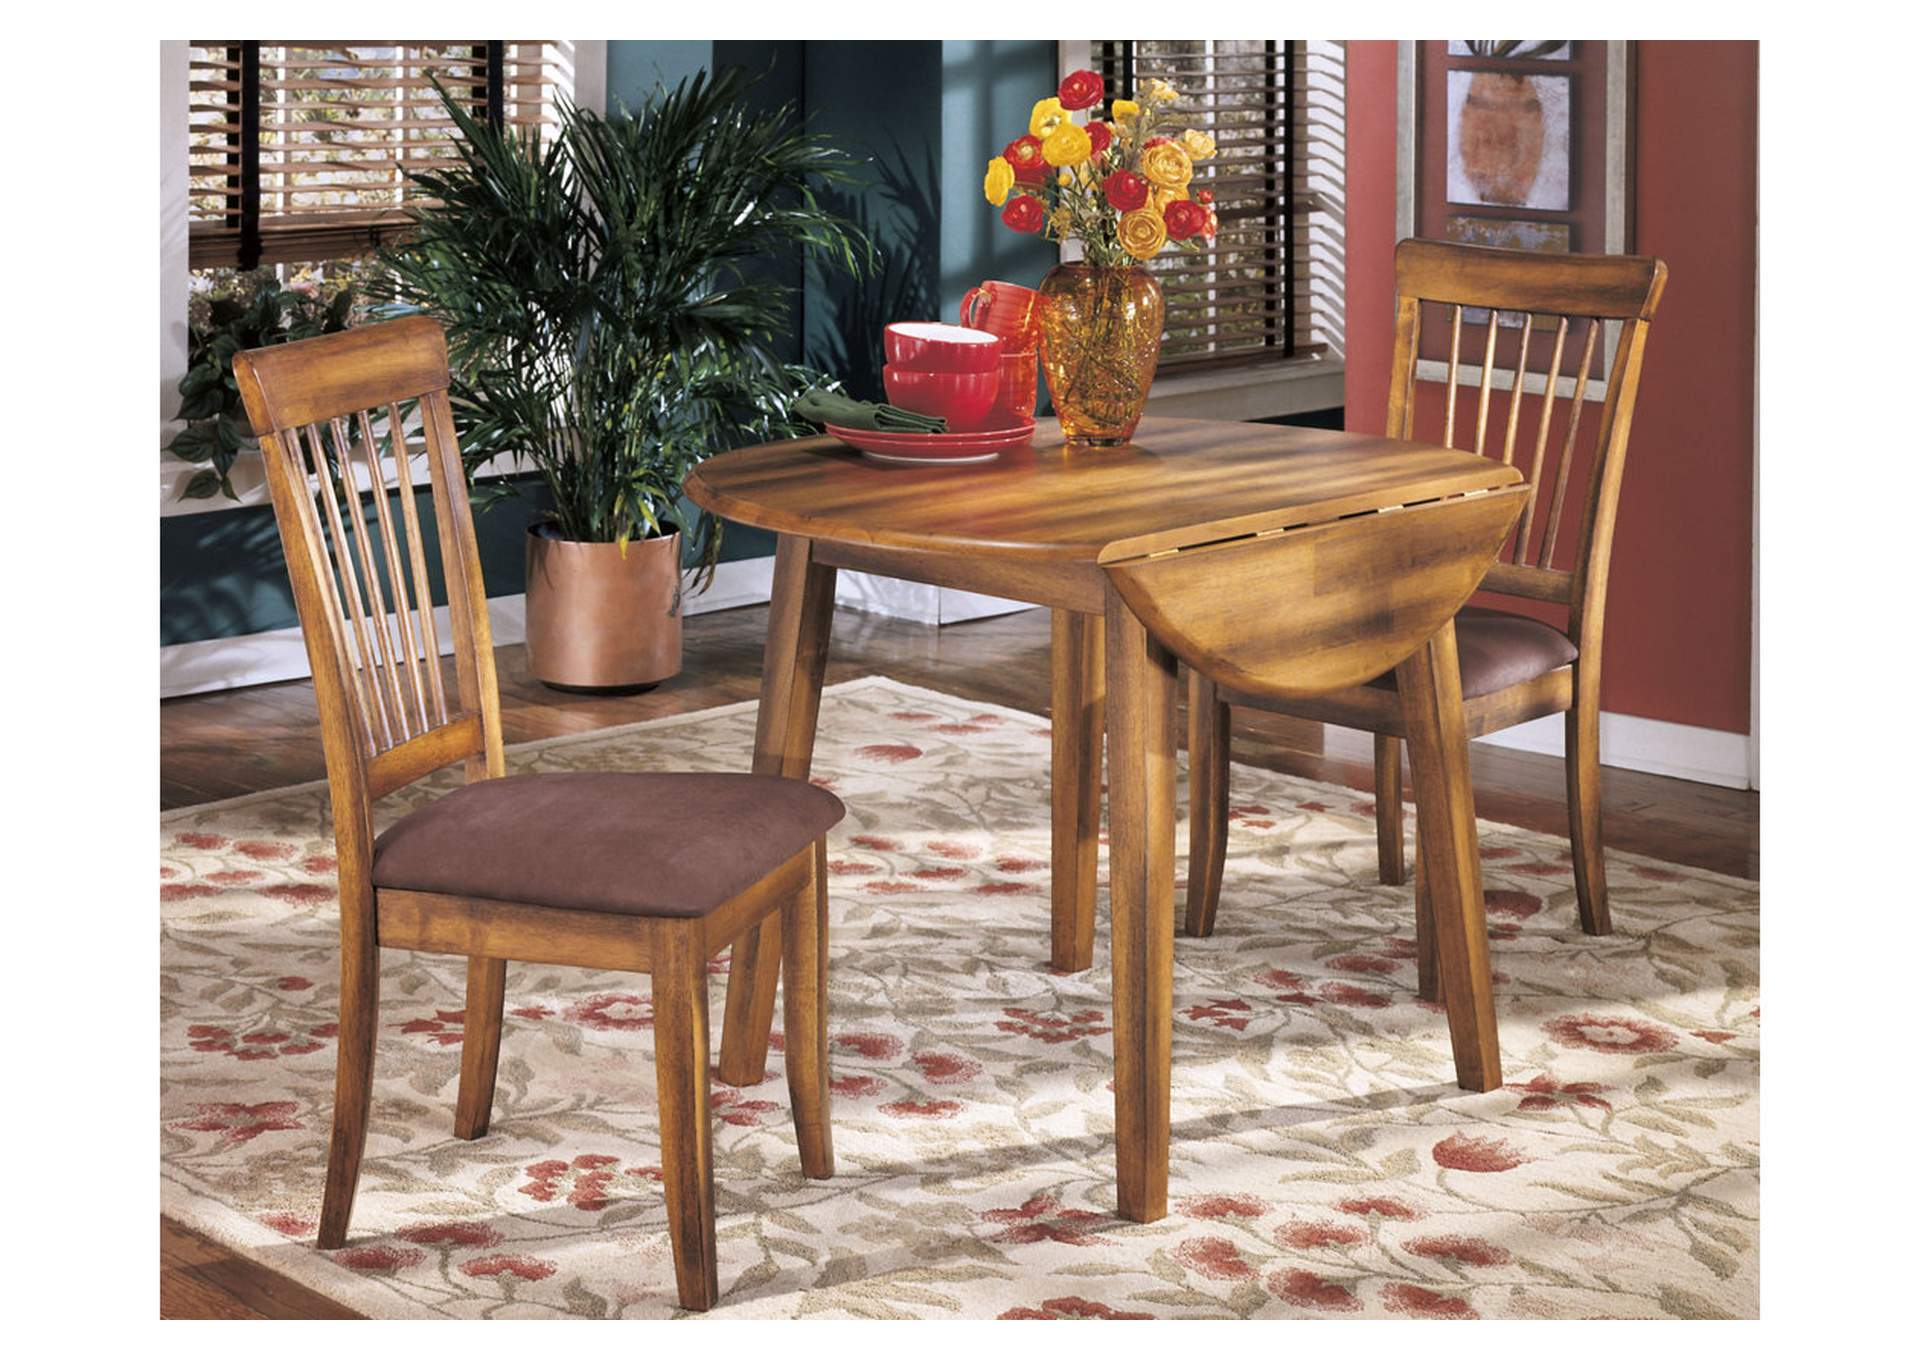 Berringer Round Drop Leaf Table,Direct To Consumer Express